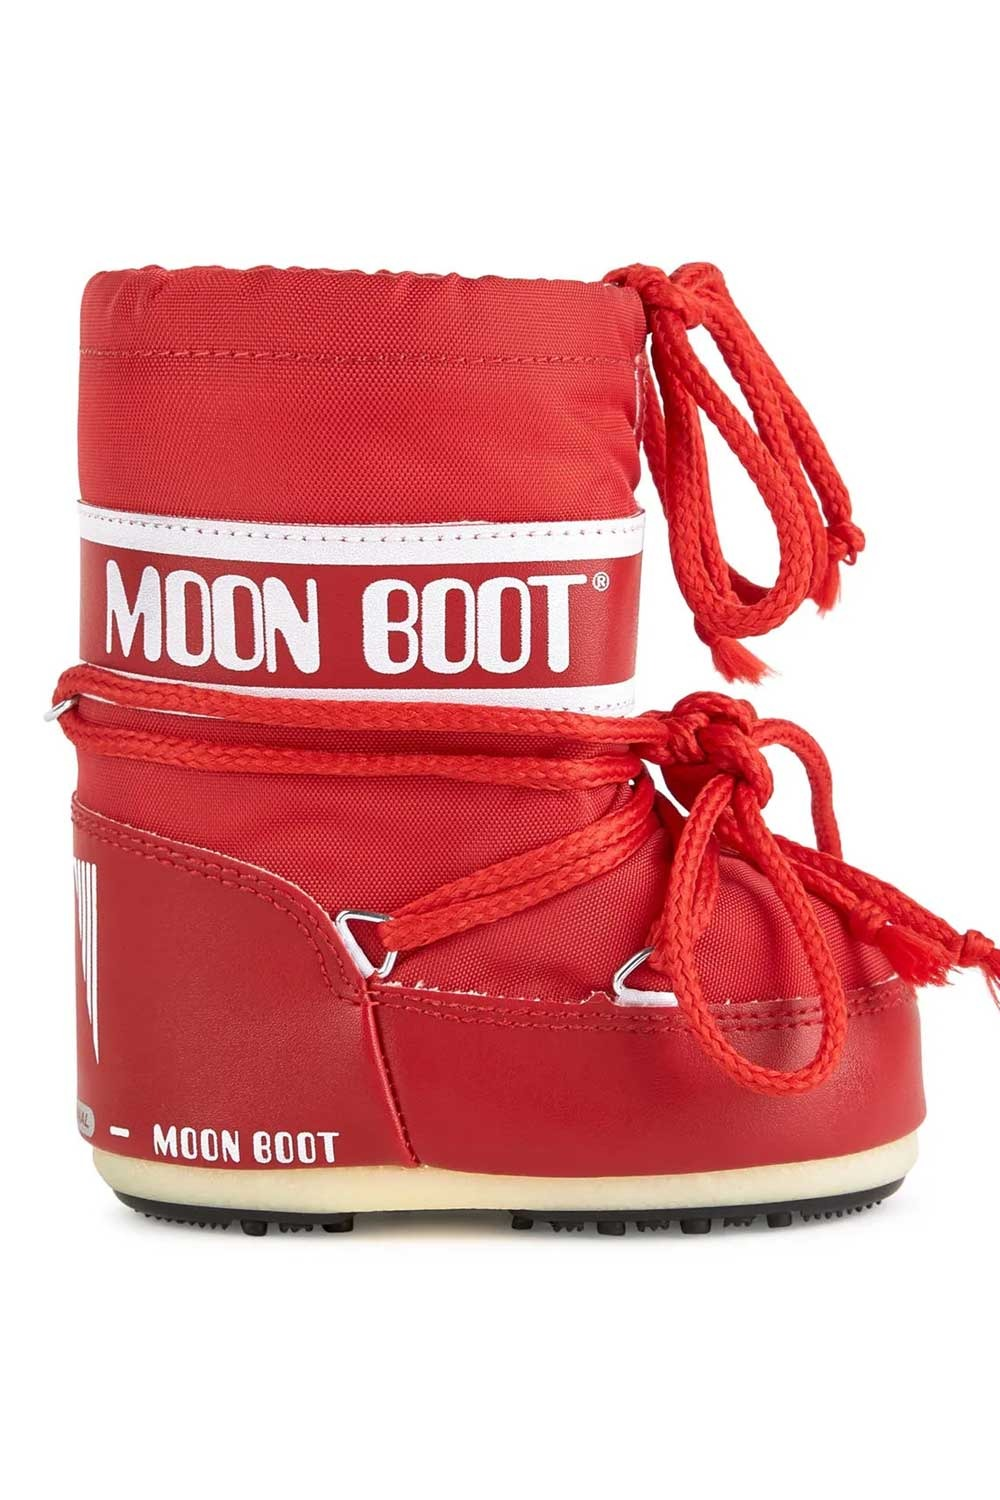 문부츠 키즈 방한부츠 미니 나일론_MOONBOOT YOUTH MOON BOOT MINI NYLON (120-145)_RED_VMQ876RE_AVMQ876RE